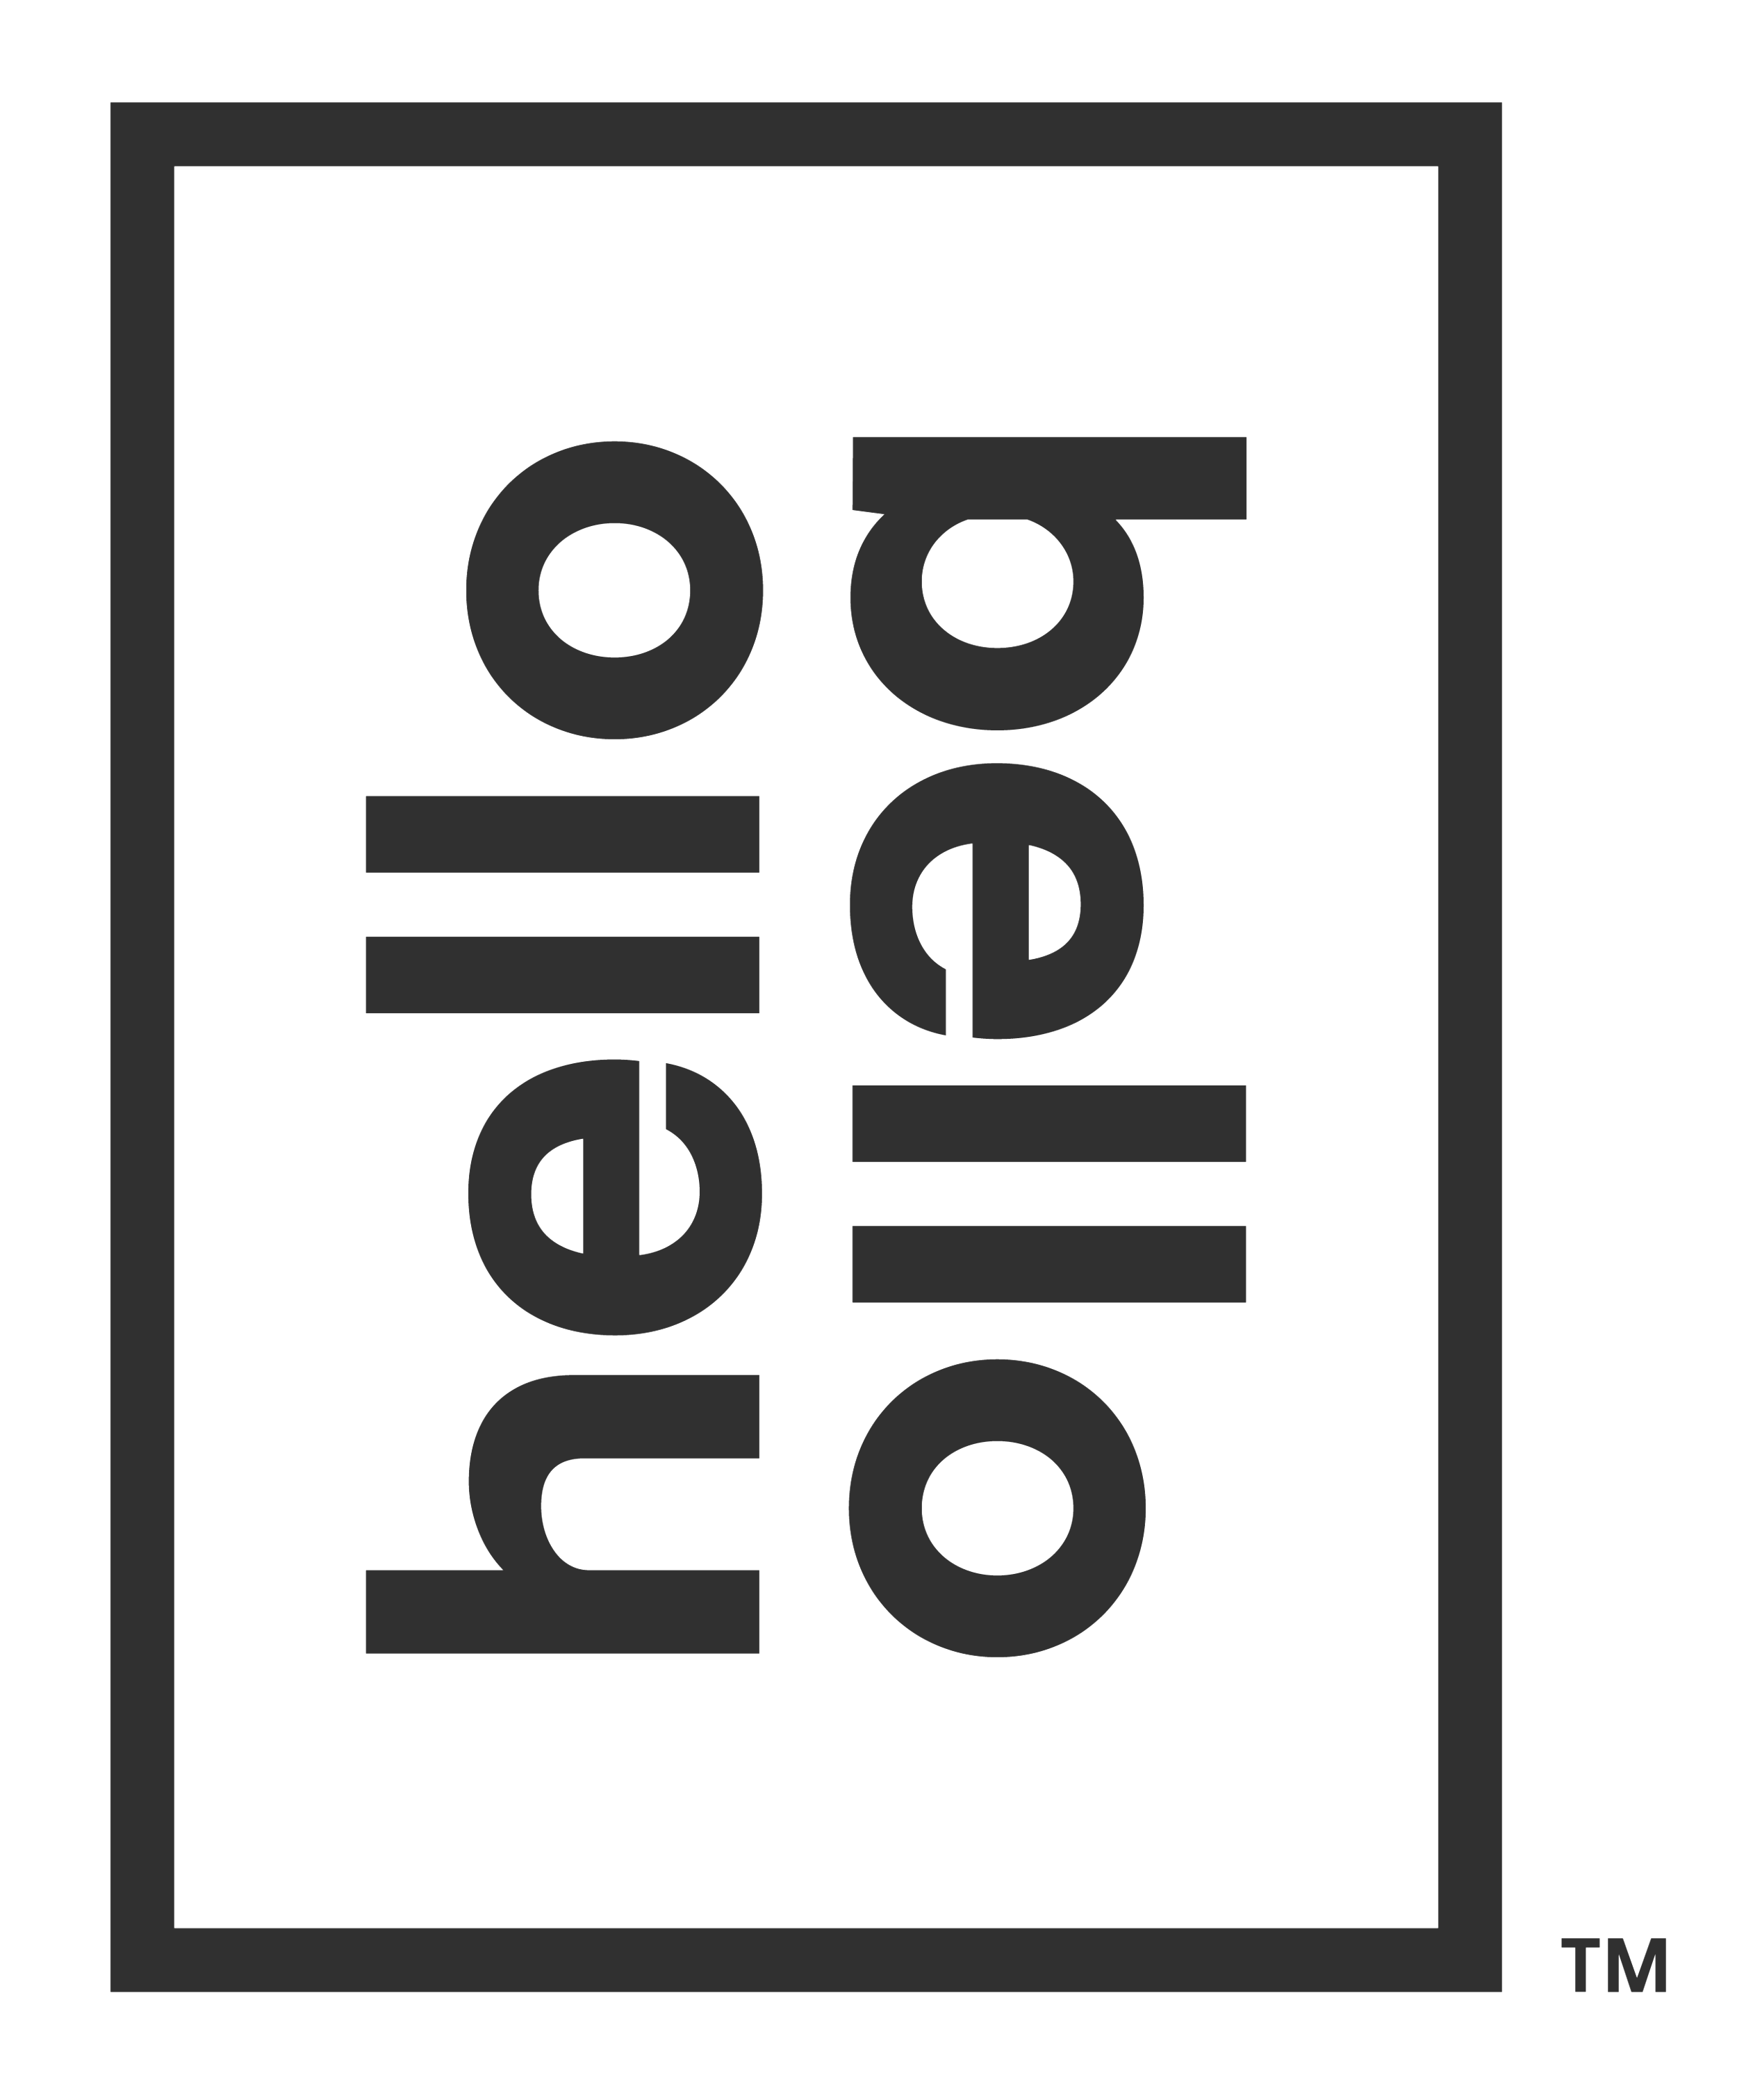 HelloBello-logo-RGB-01 - Amy Wicks.png